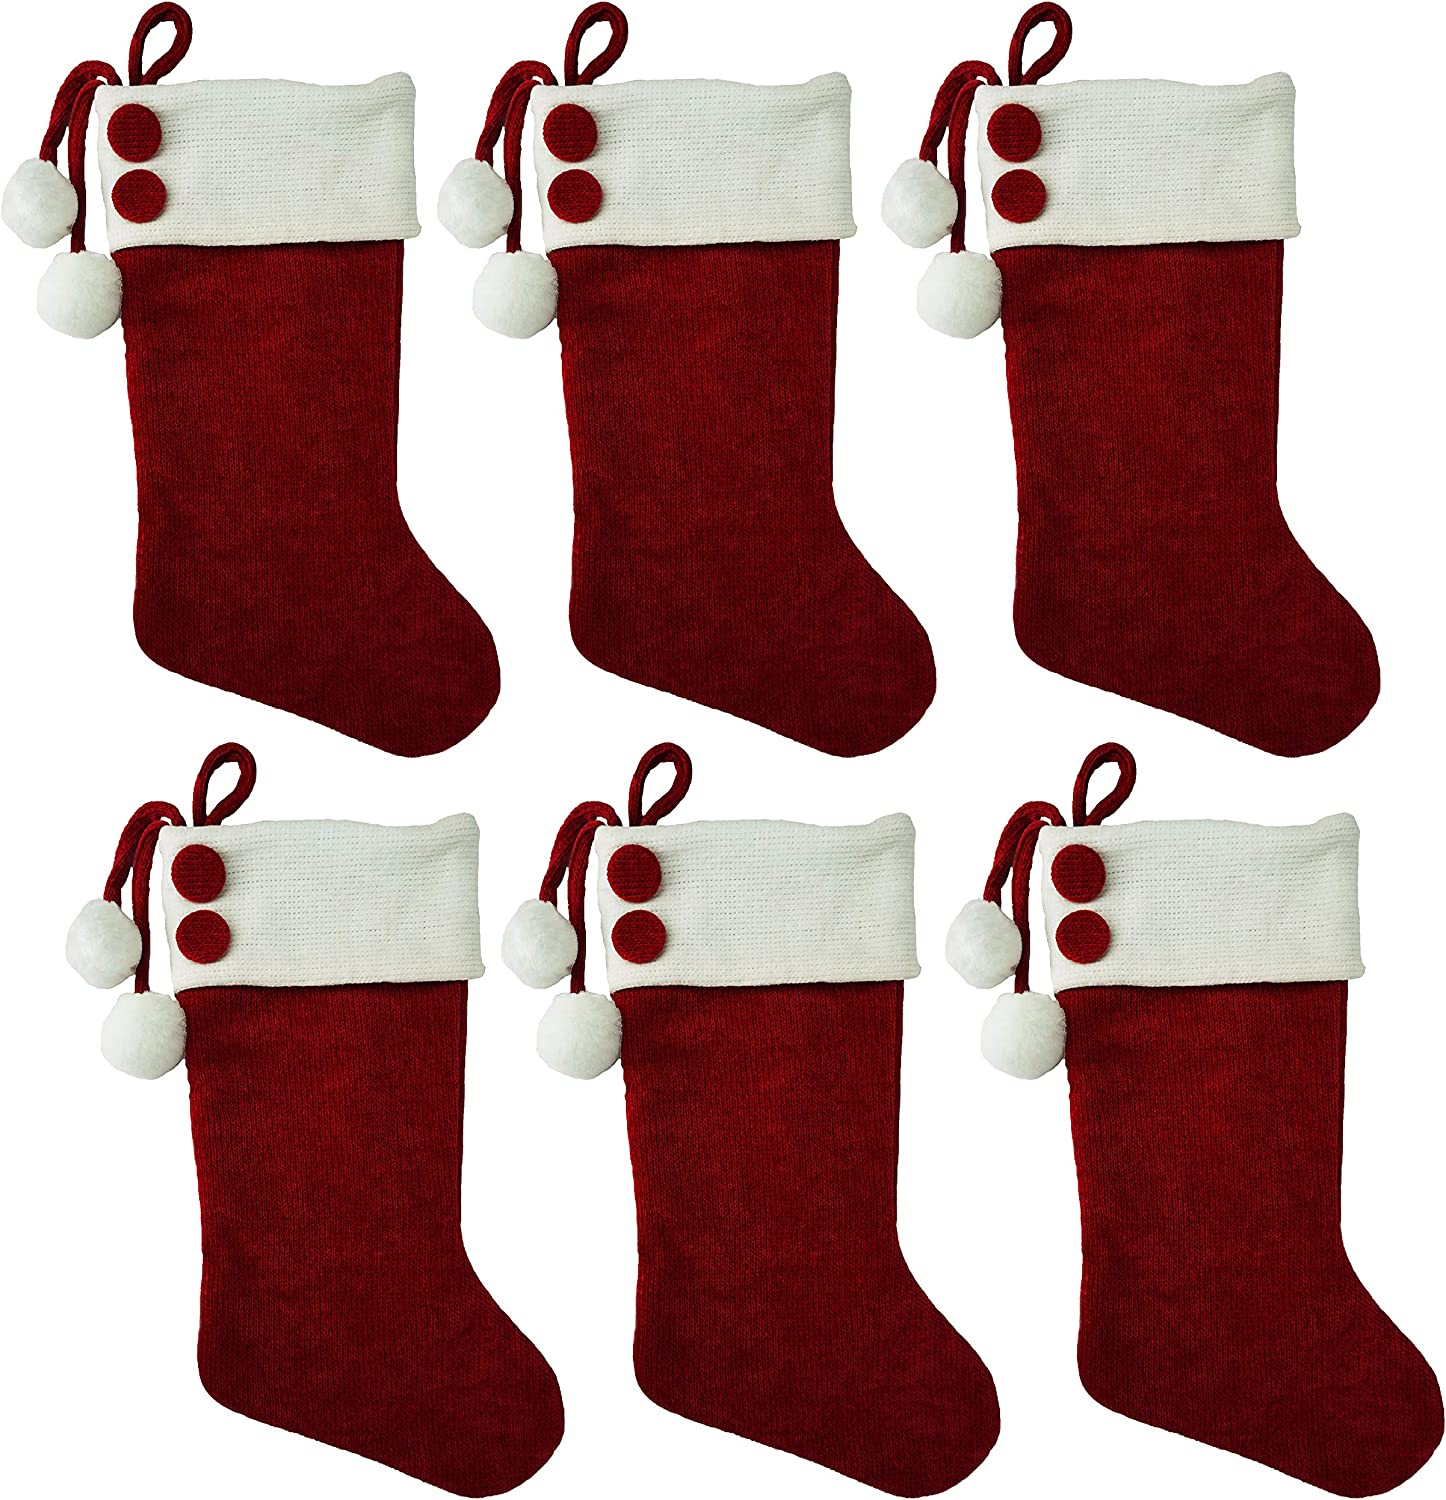 "Lulu Decor, Christmas White & Red Stockings with Bottons 18"" (Pompom 6 pc)"